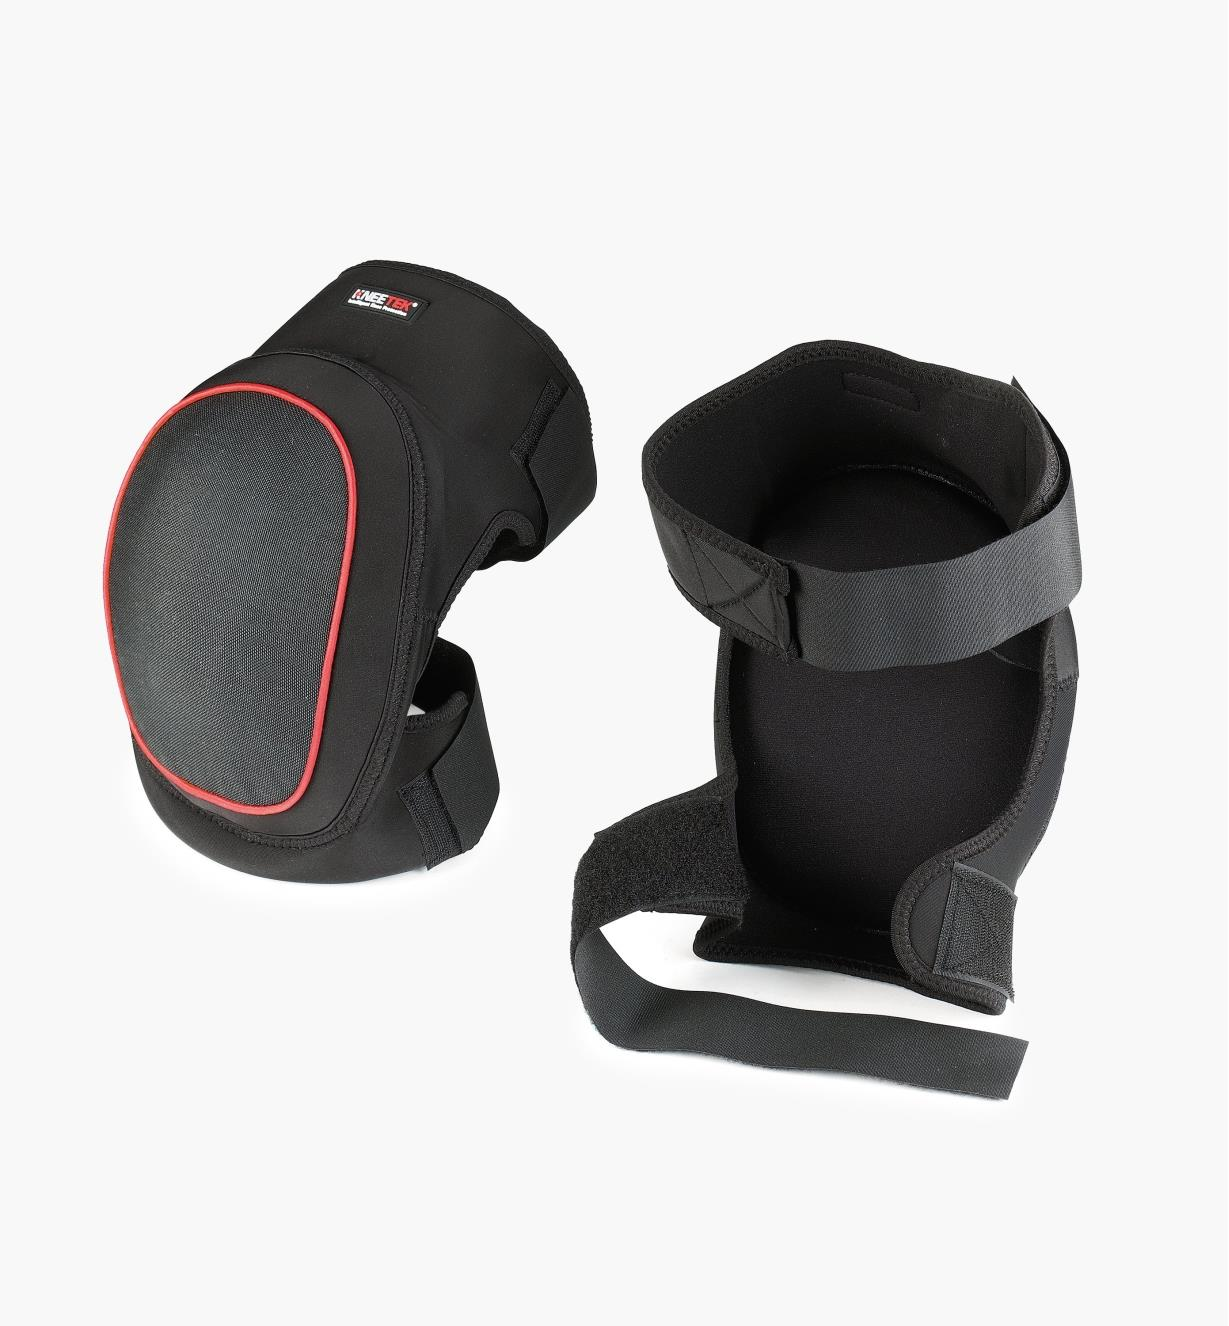 67K7437 - Safetek Soft Knee Pads, pr.